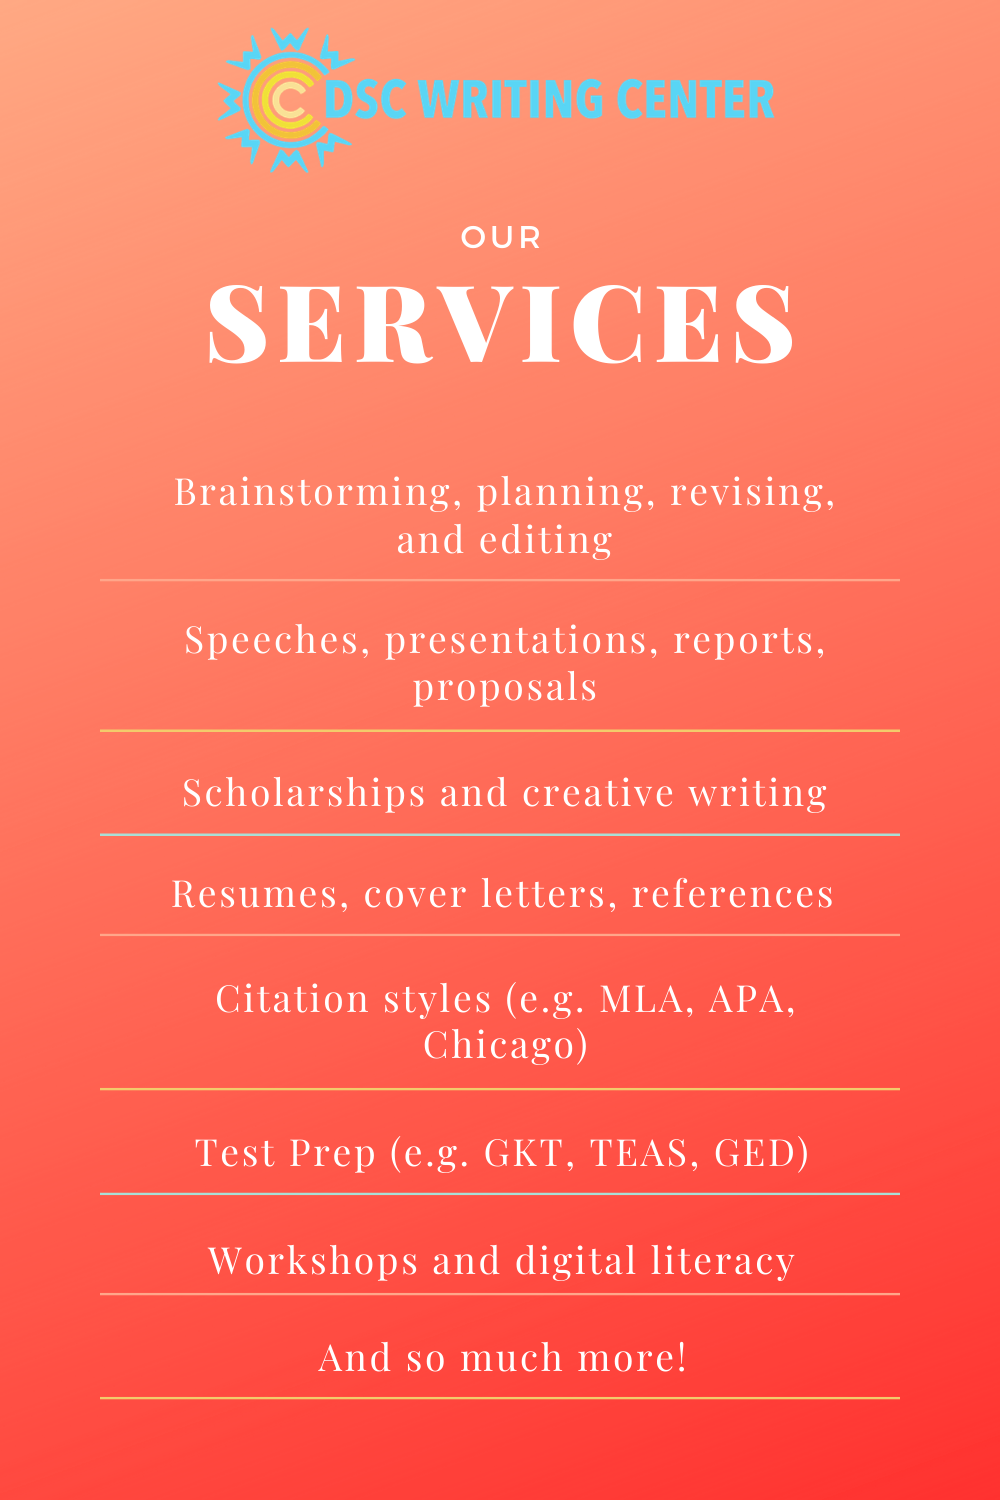 Our Services in 2020 Writing center, Digital literacy